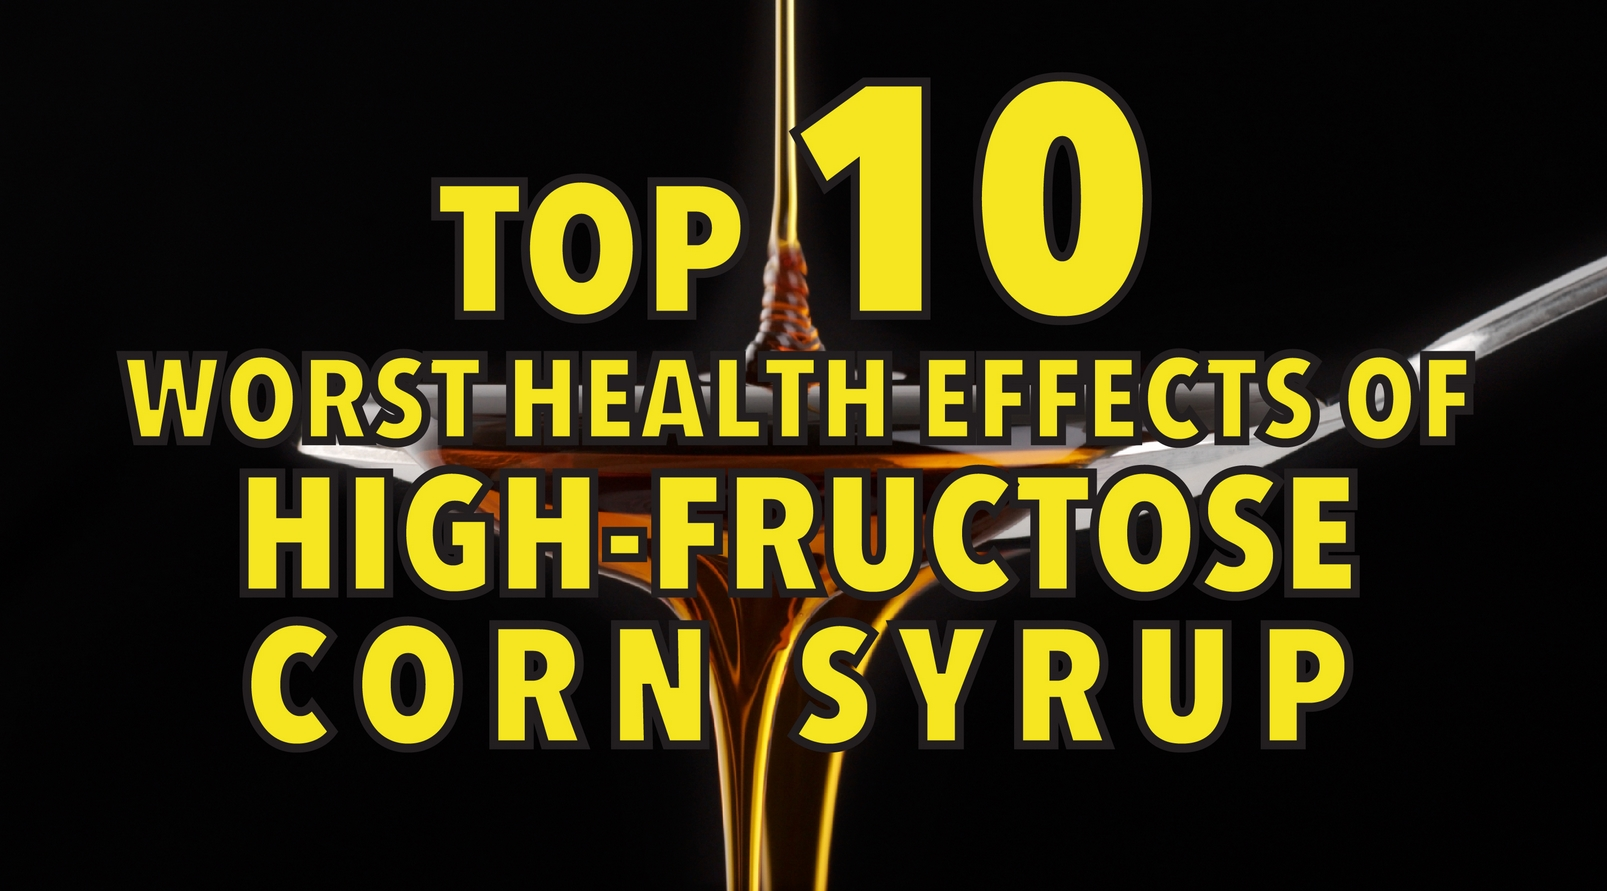 Top 10 worst health effects of high-fructose corn syrup-01